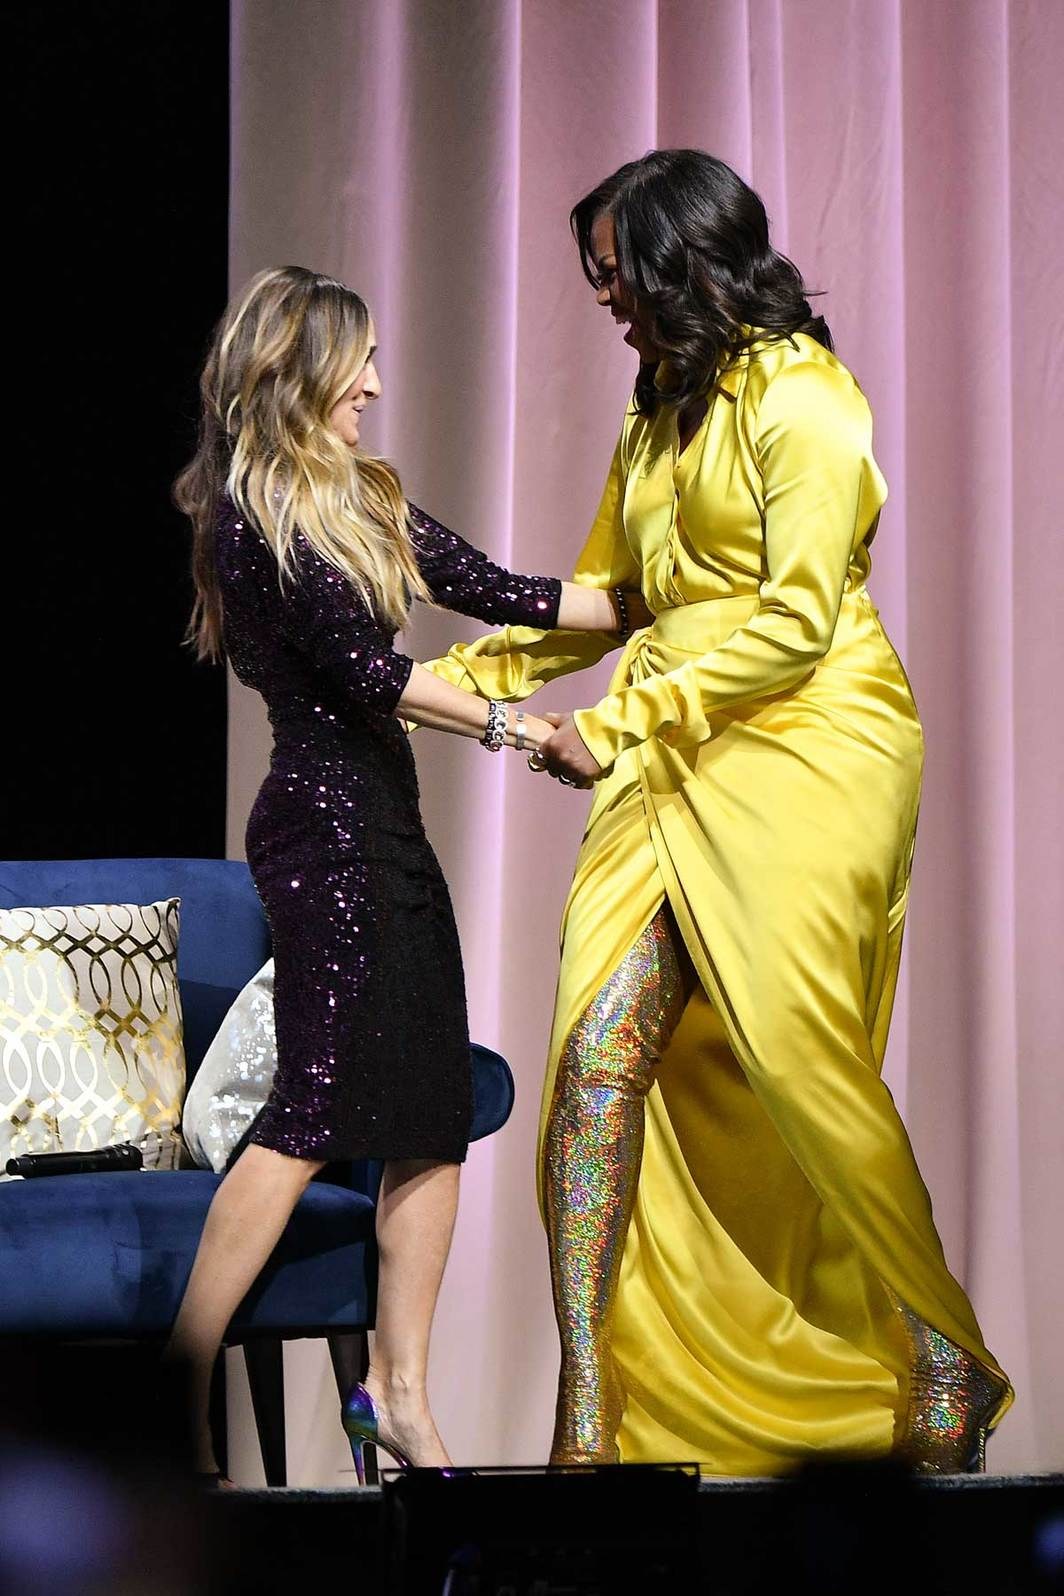 Michelle Obama and Sarah Jessica Parker during the book tour for Obama's Becoming, Barclays Center, Brooklyn, NY, December 19, 2018. Photo: Dia Dipasupil/Getty.